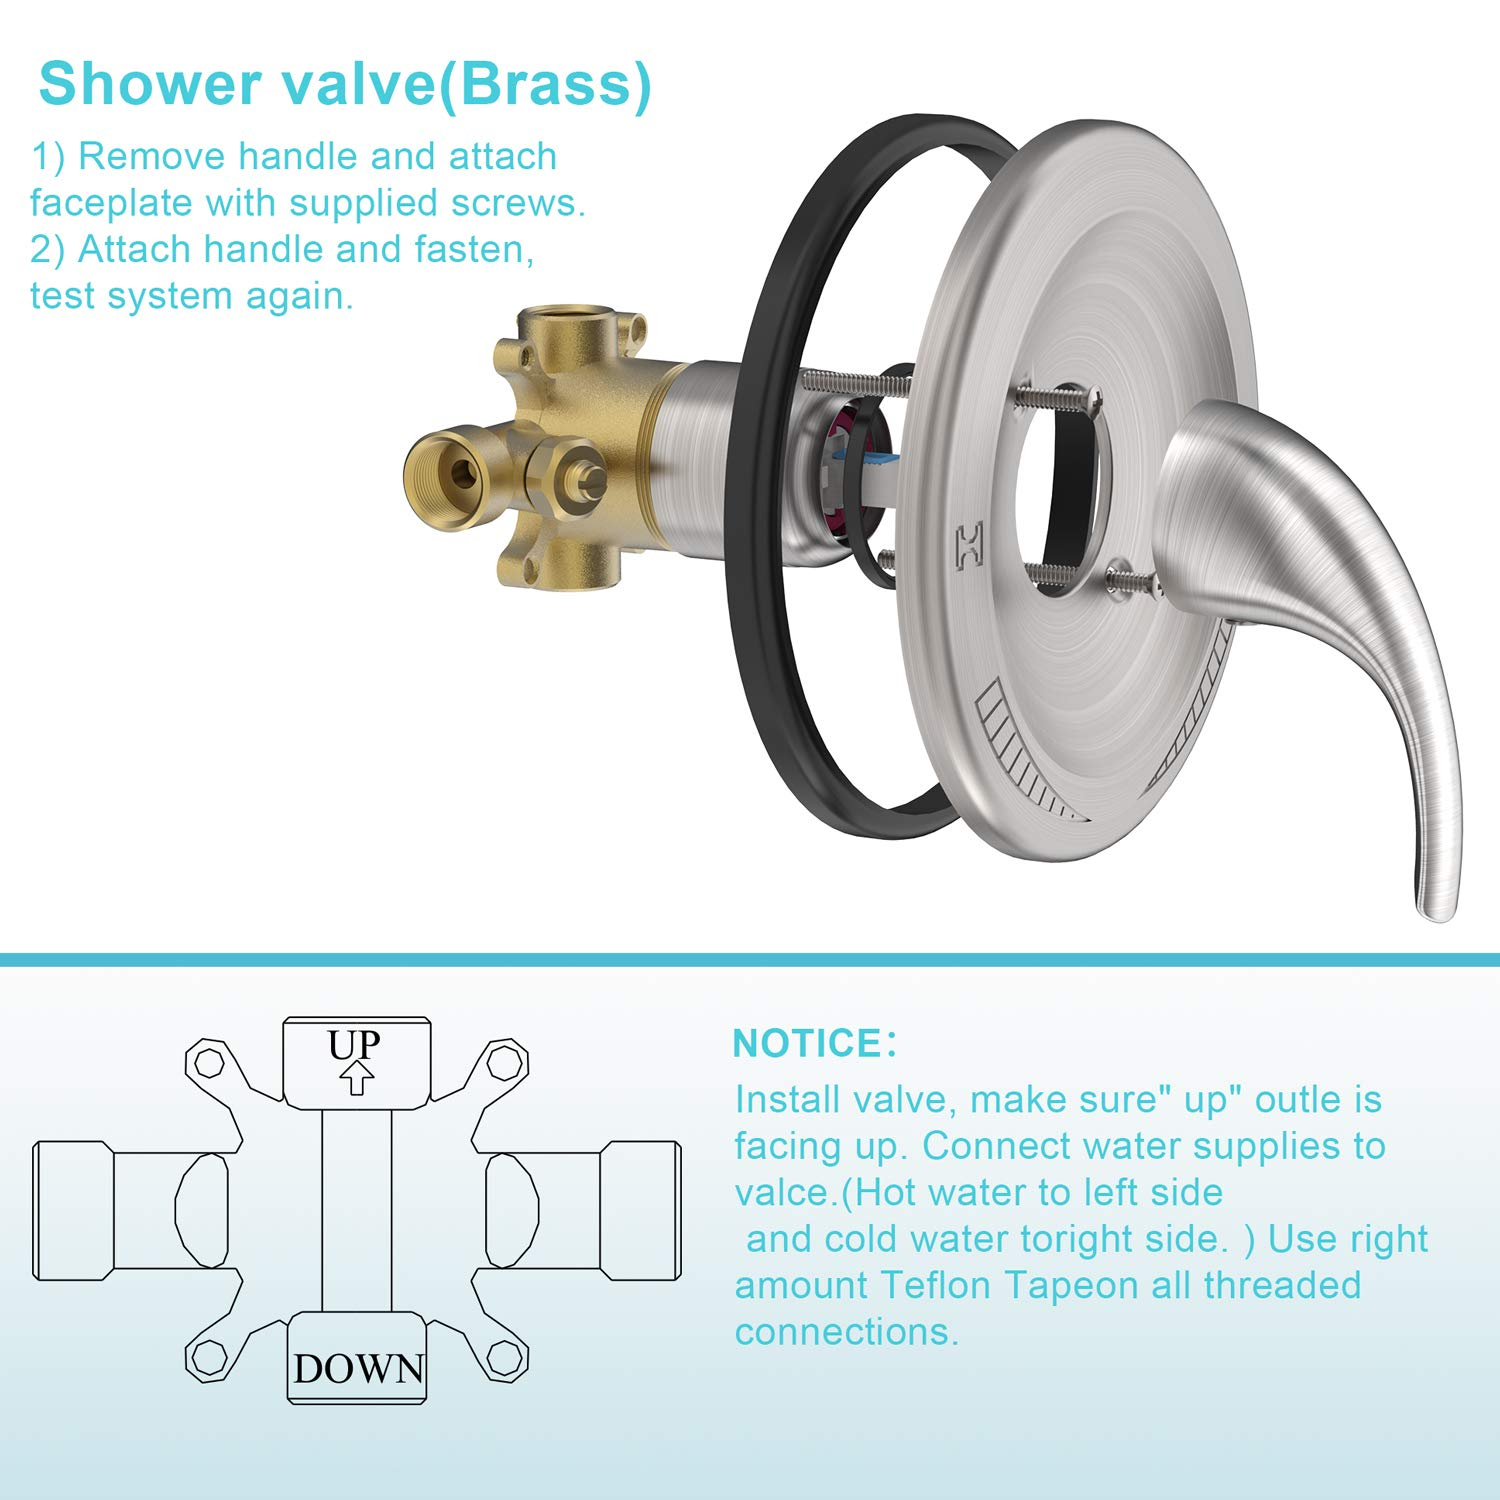 Valve Included Brushed Nickel SunCleanse ZDQ-SF-008N Single-Function Tub and Shower Trim Kit with 3-Spray Function Touch-Clean Shower Head